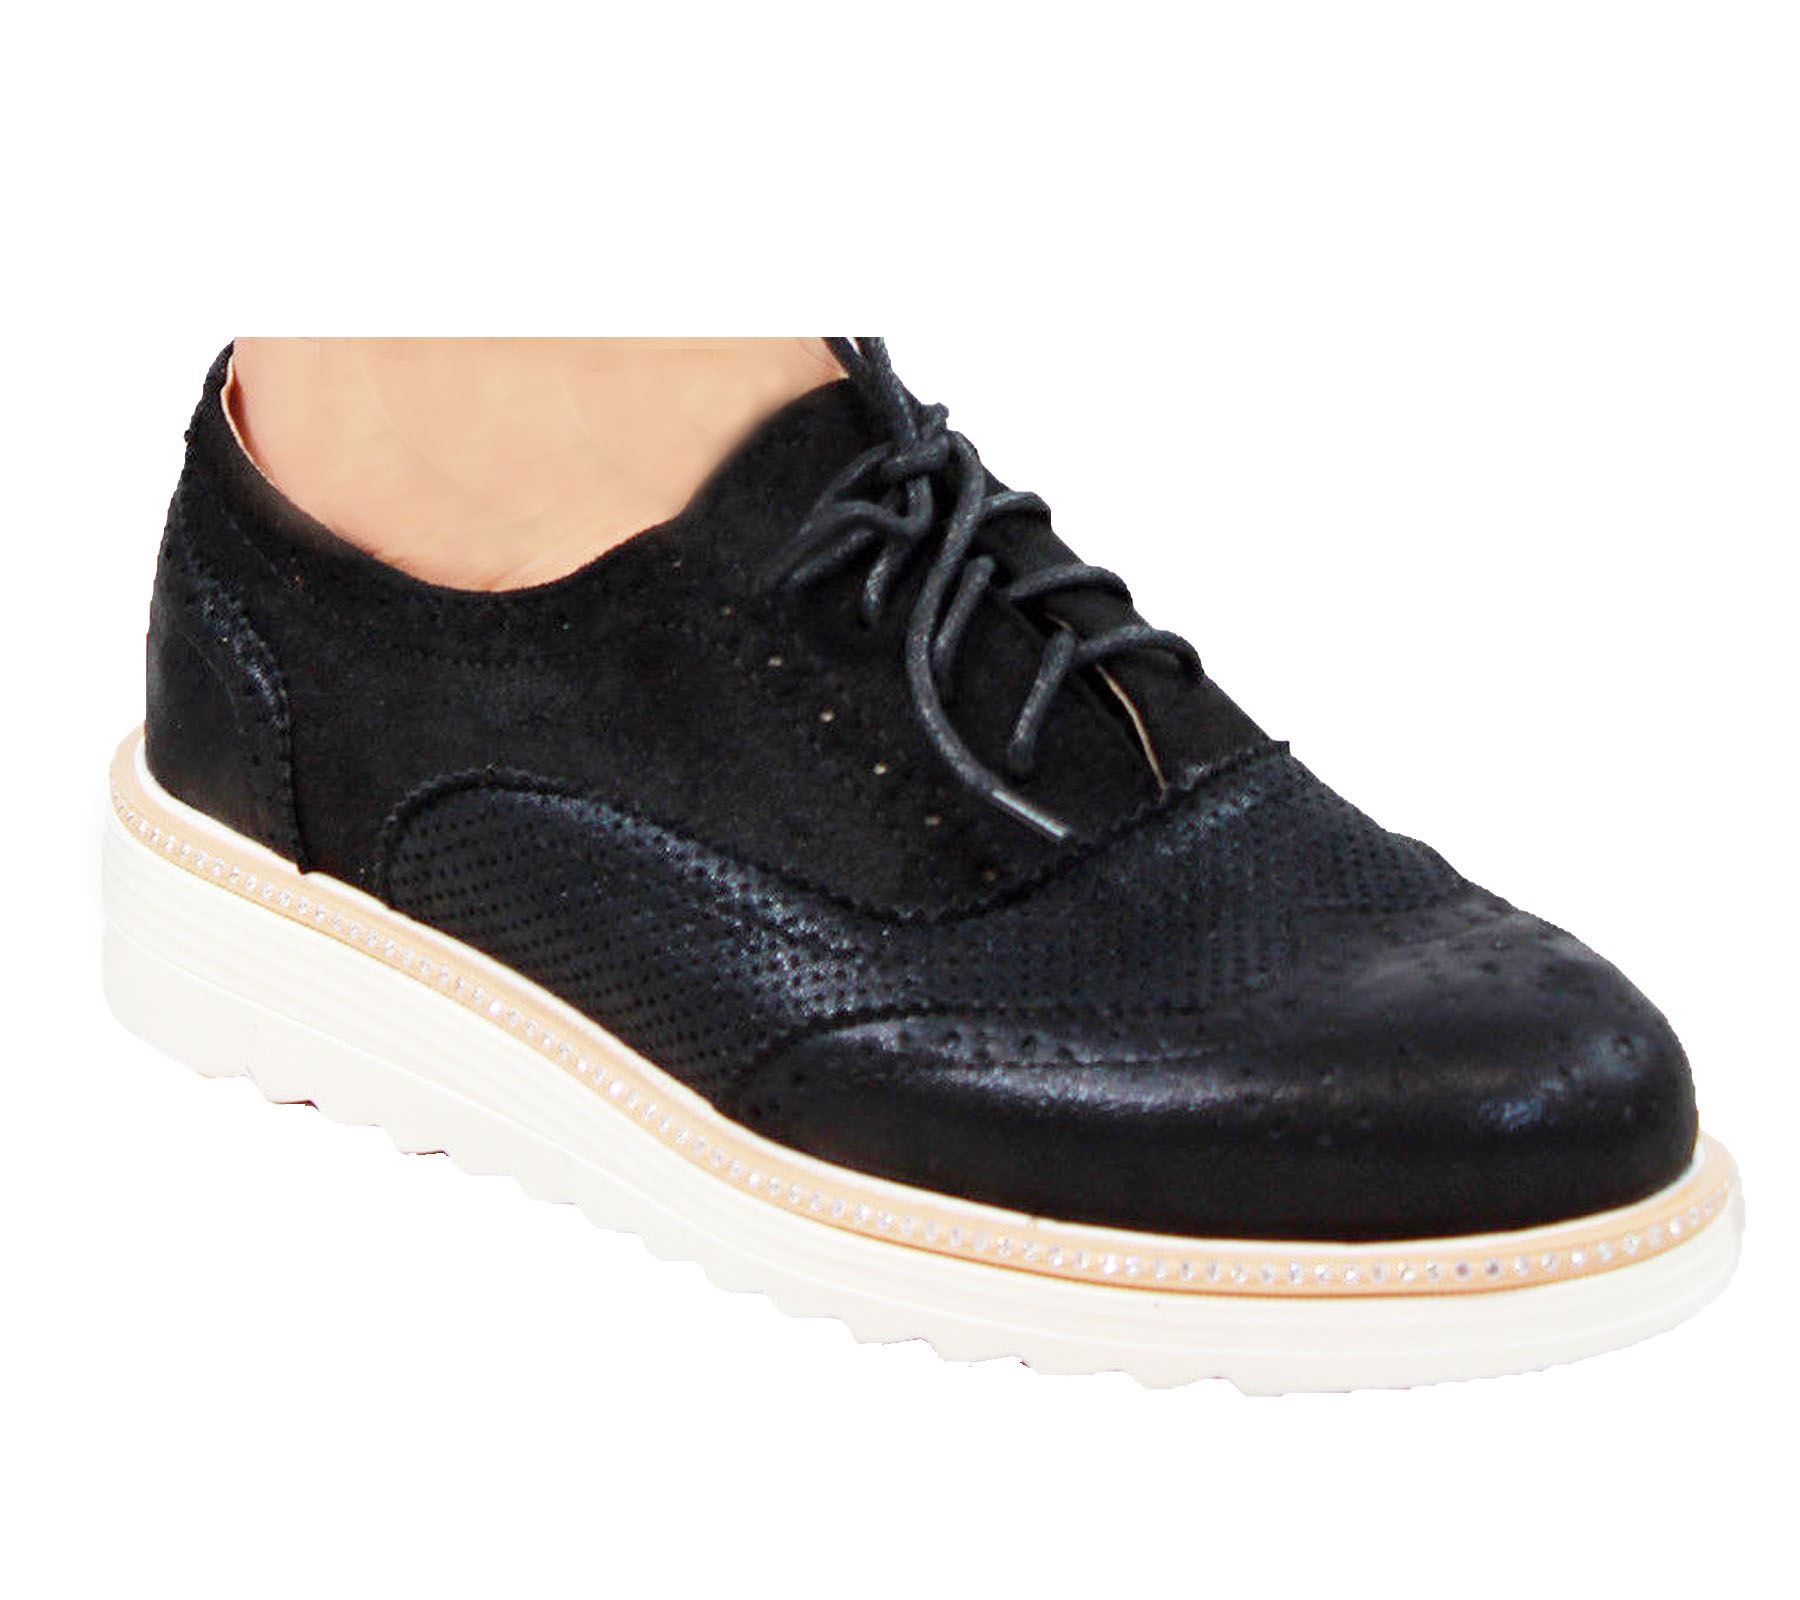 Ladies-Brogue-Lace-Up-Shoes-Womens-Oxford-Smart-Office-Loafers-Shoes miniatura 10